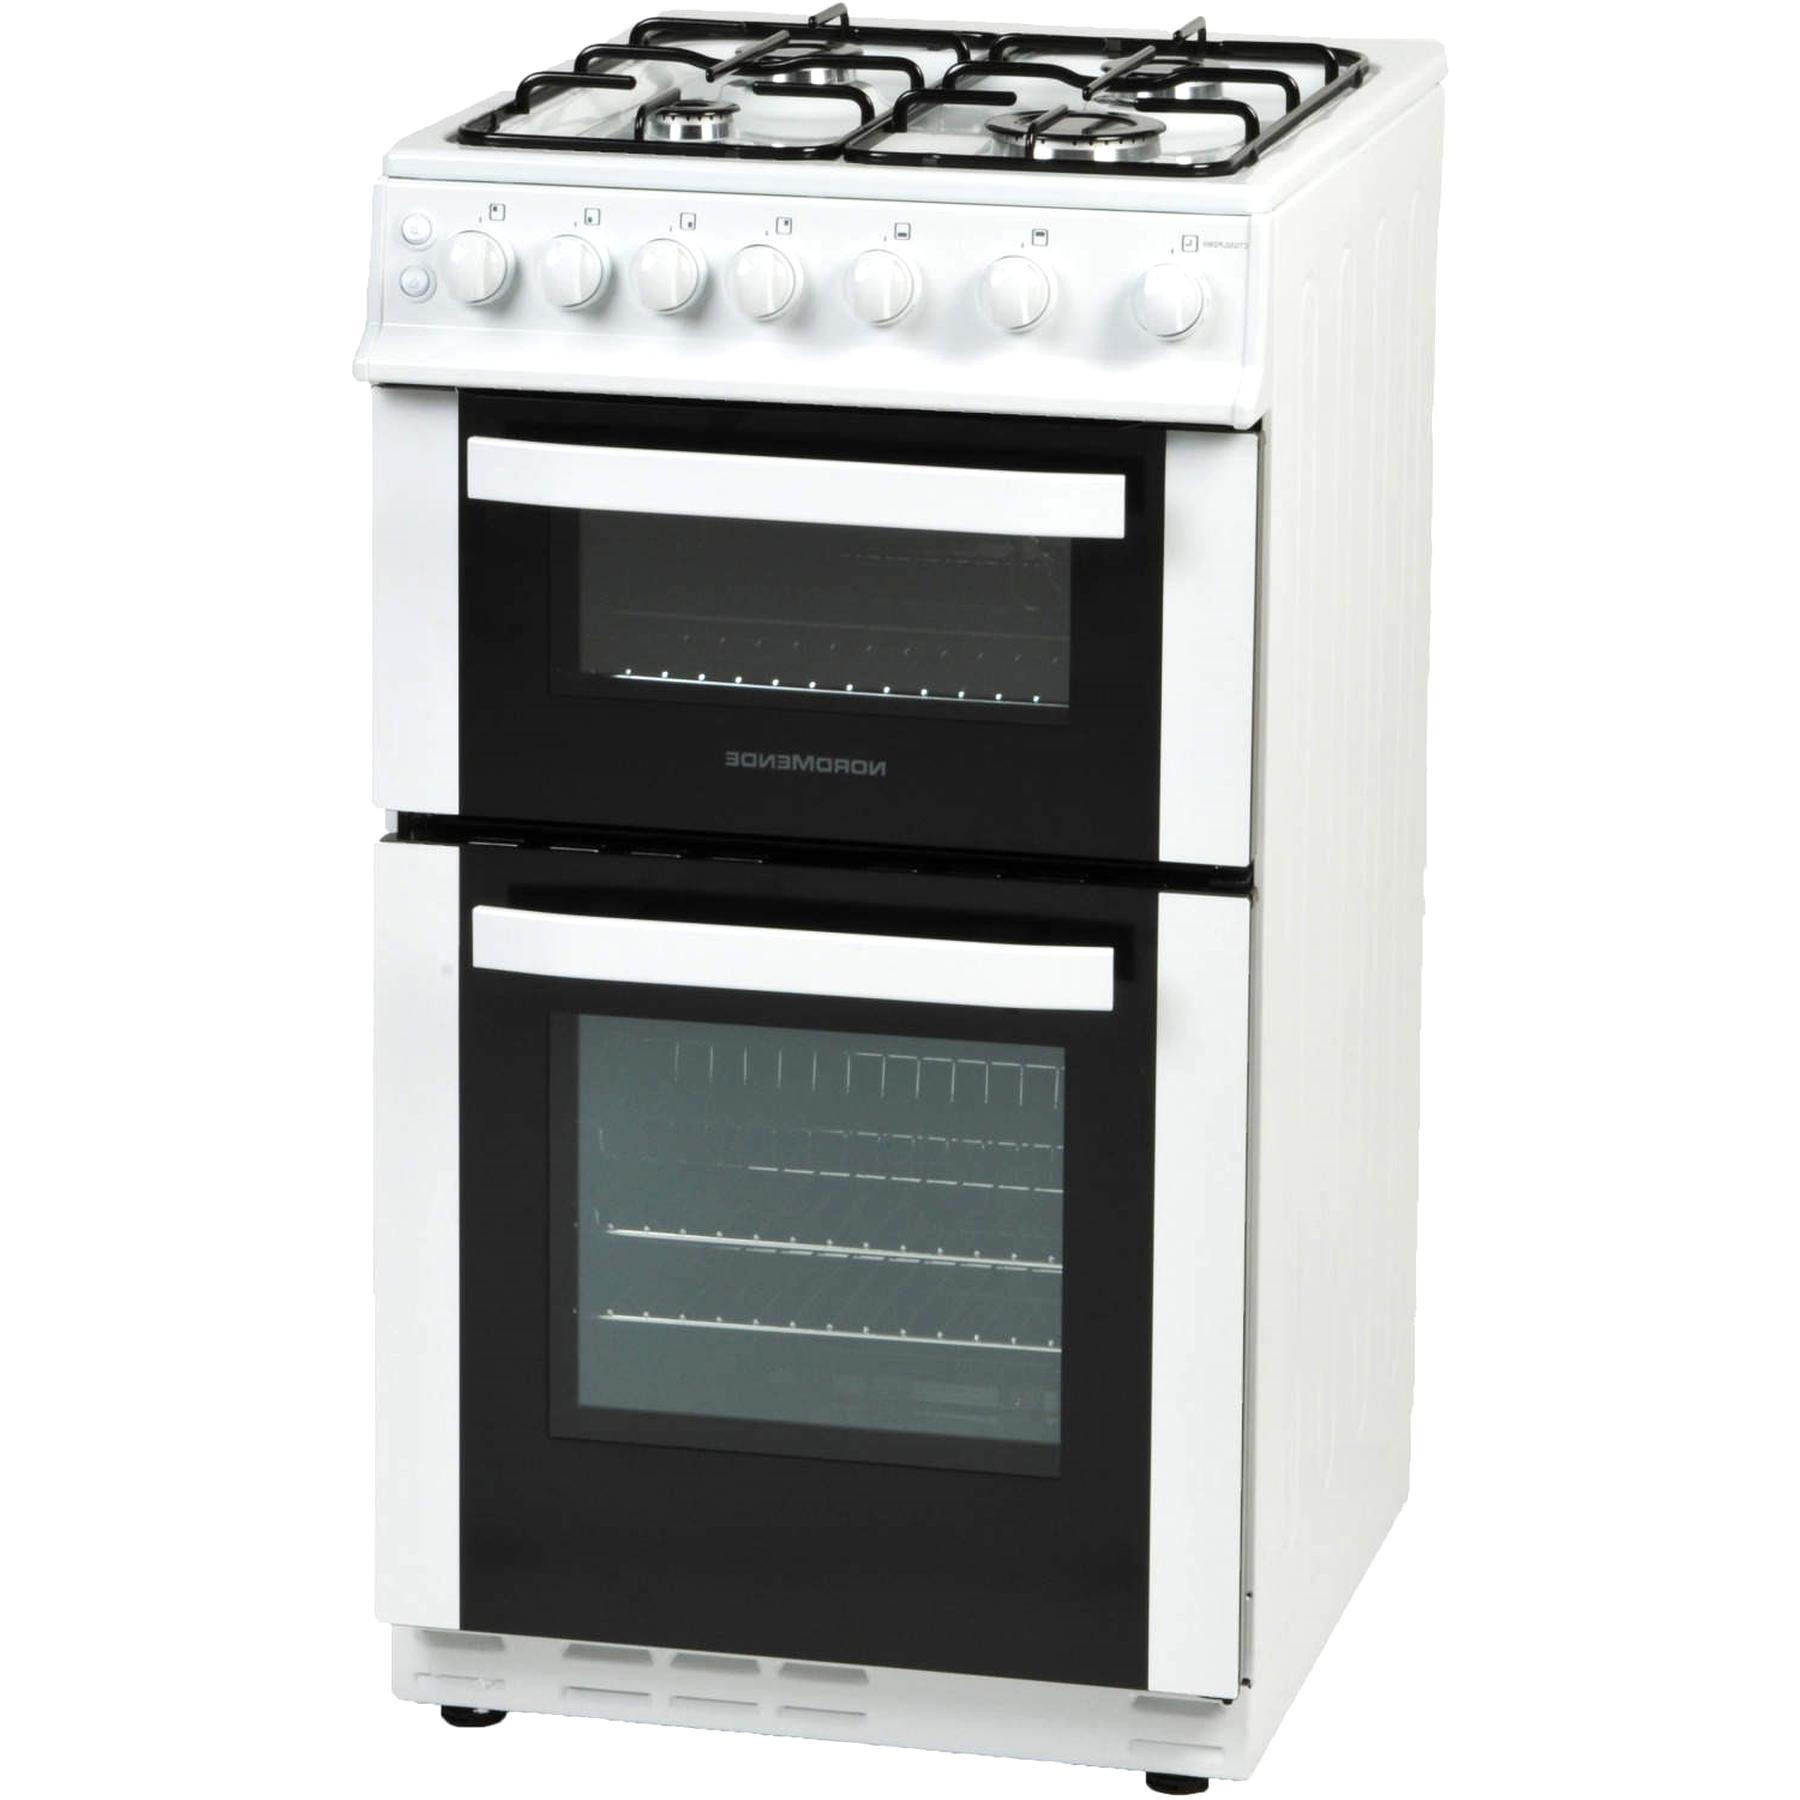 lpg gas cookers for sale